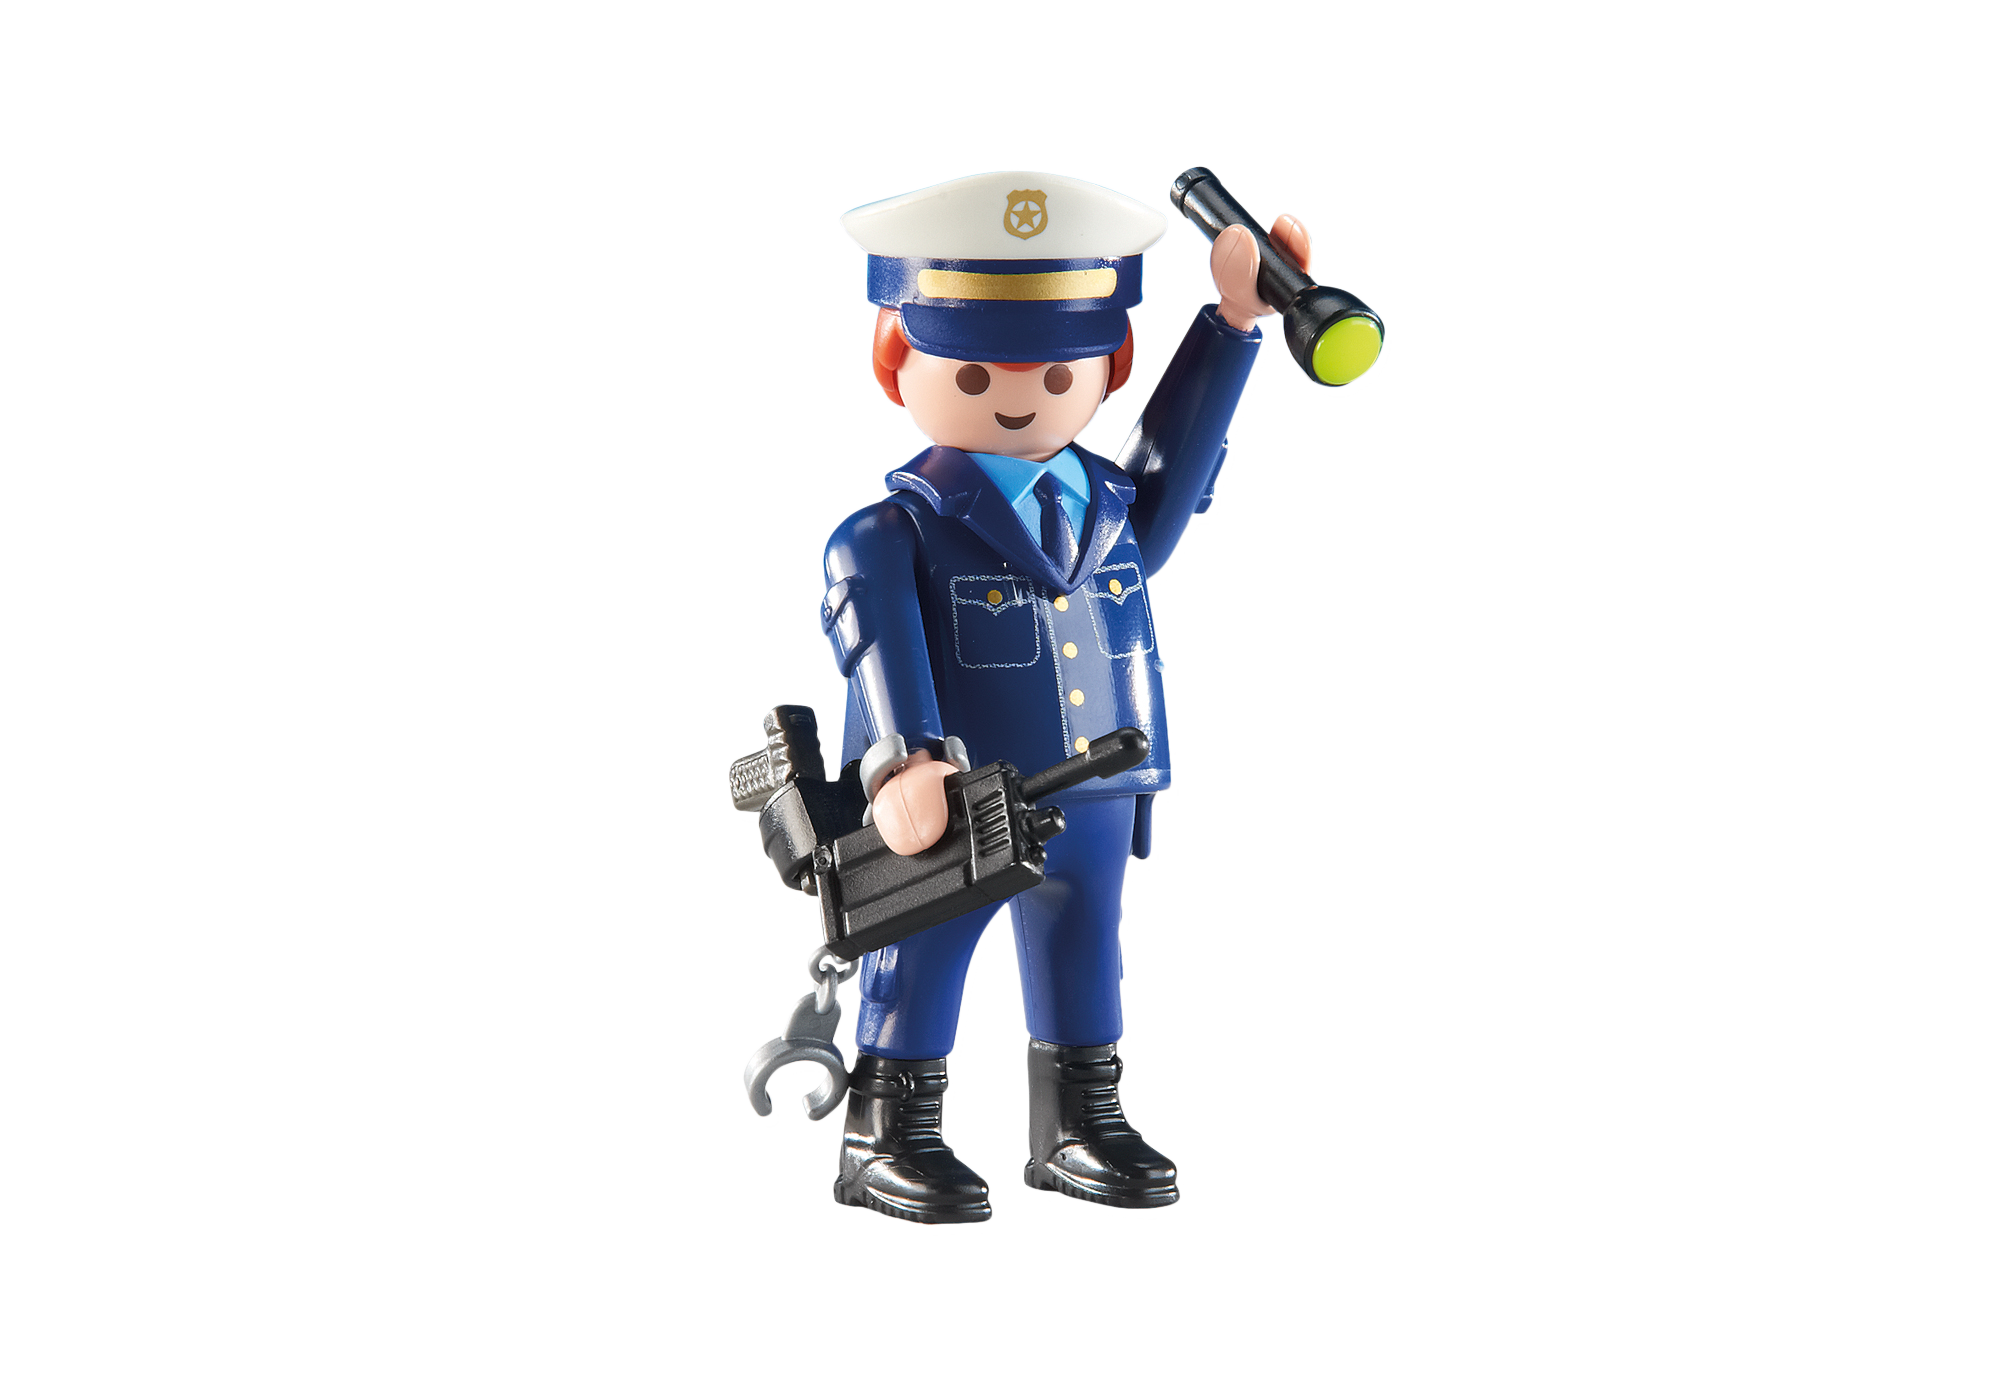 http://media.playmobil.com/i/playmobil/6502_product_detail/Polizeichef